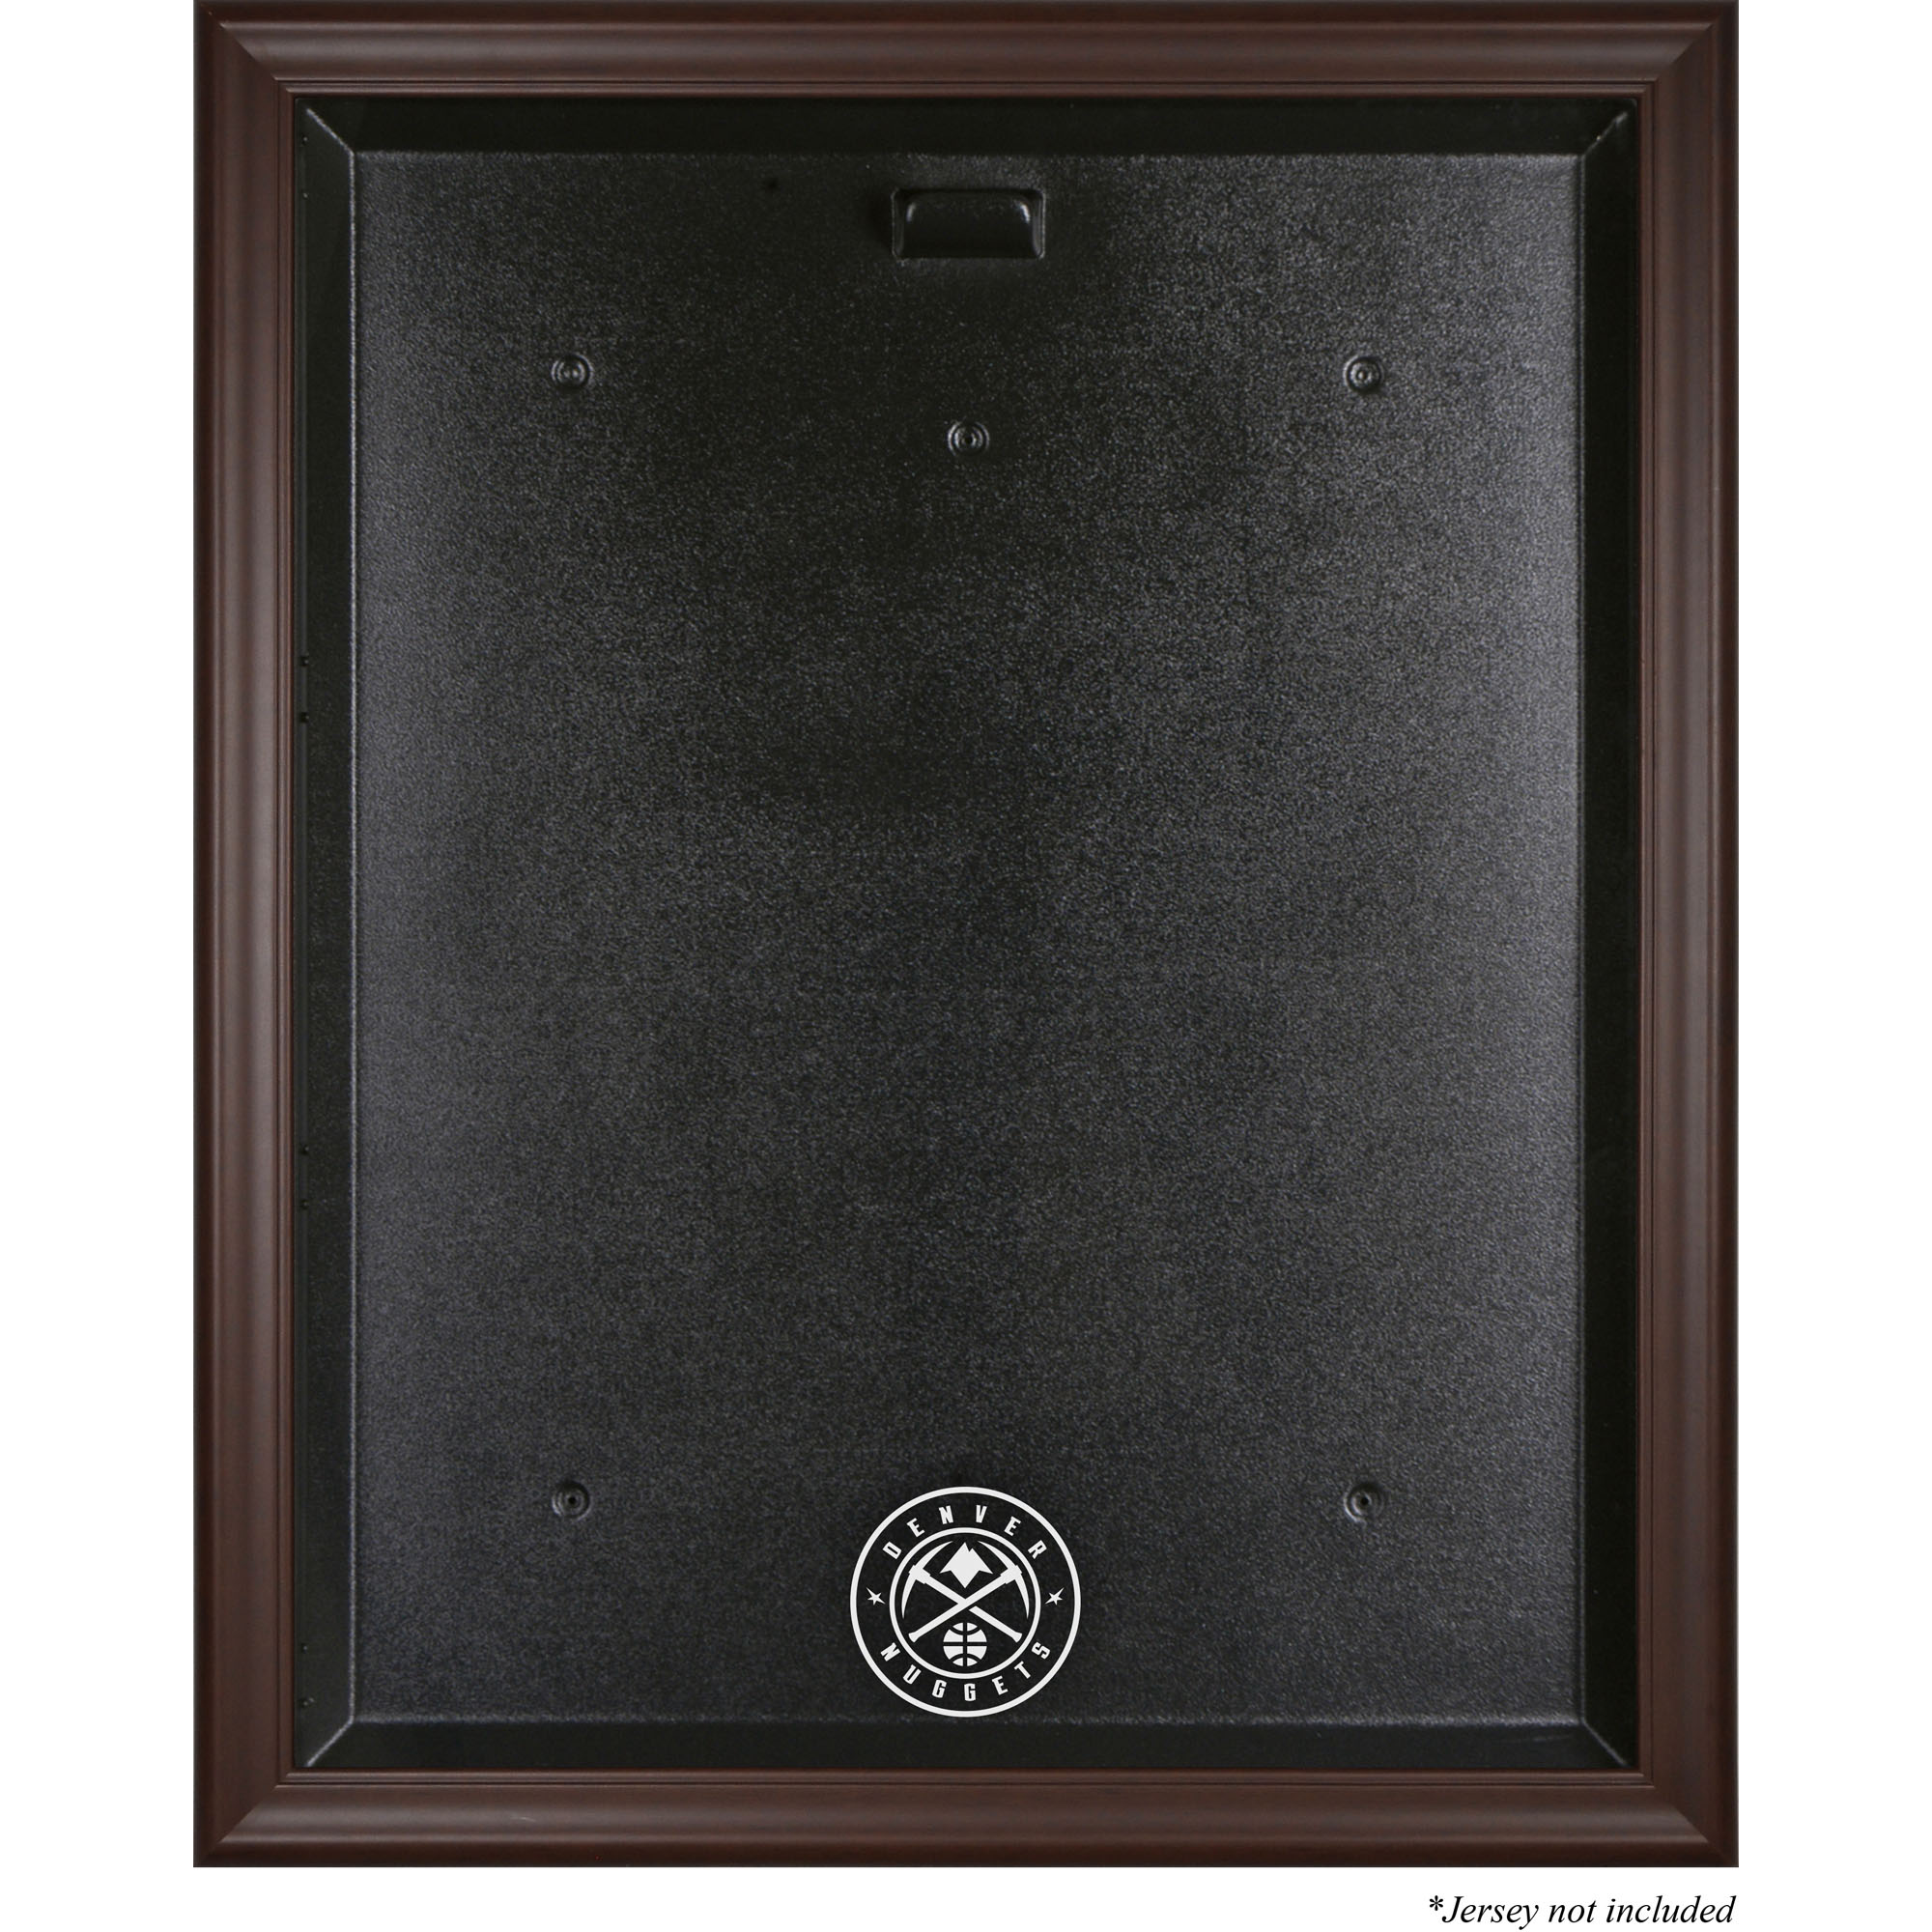 Denver Nuggets Fanatics Authentic Framed Brown Jersey Display Case